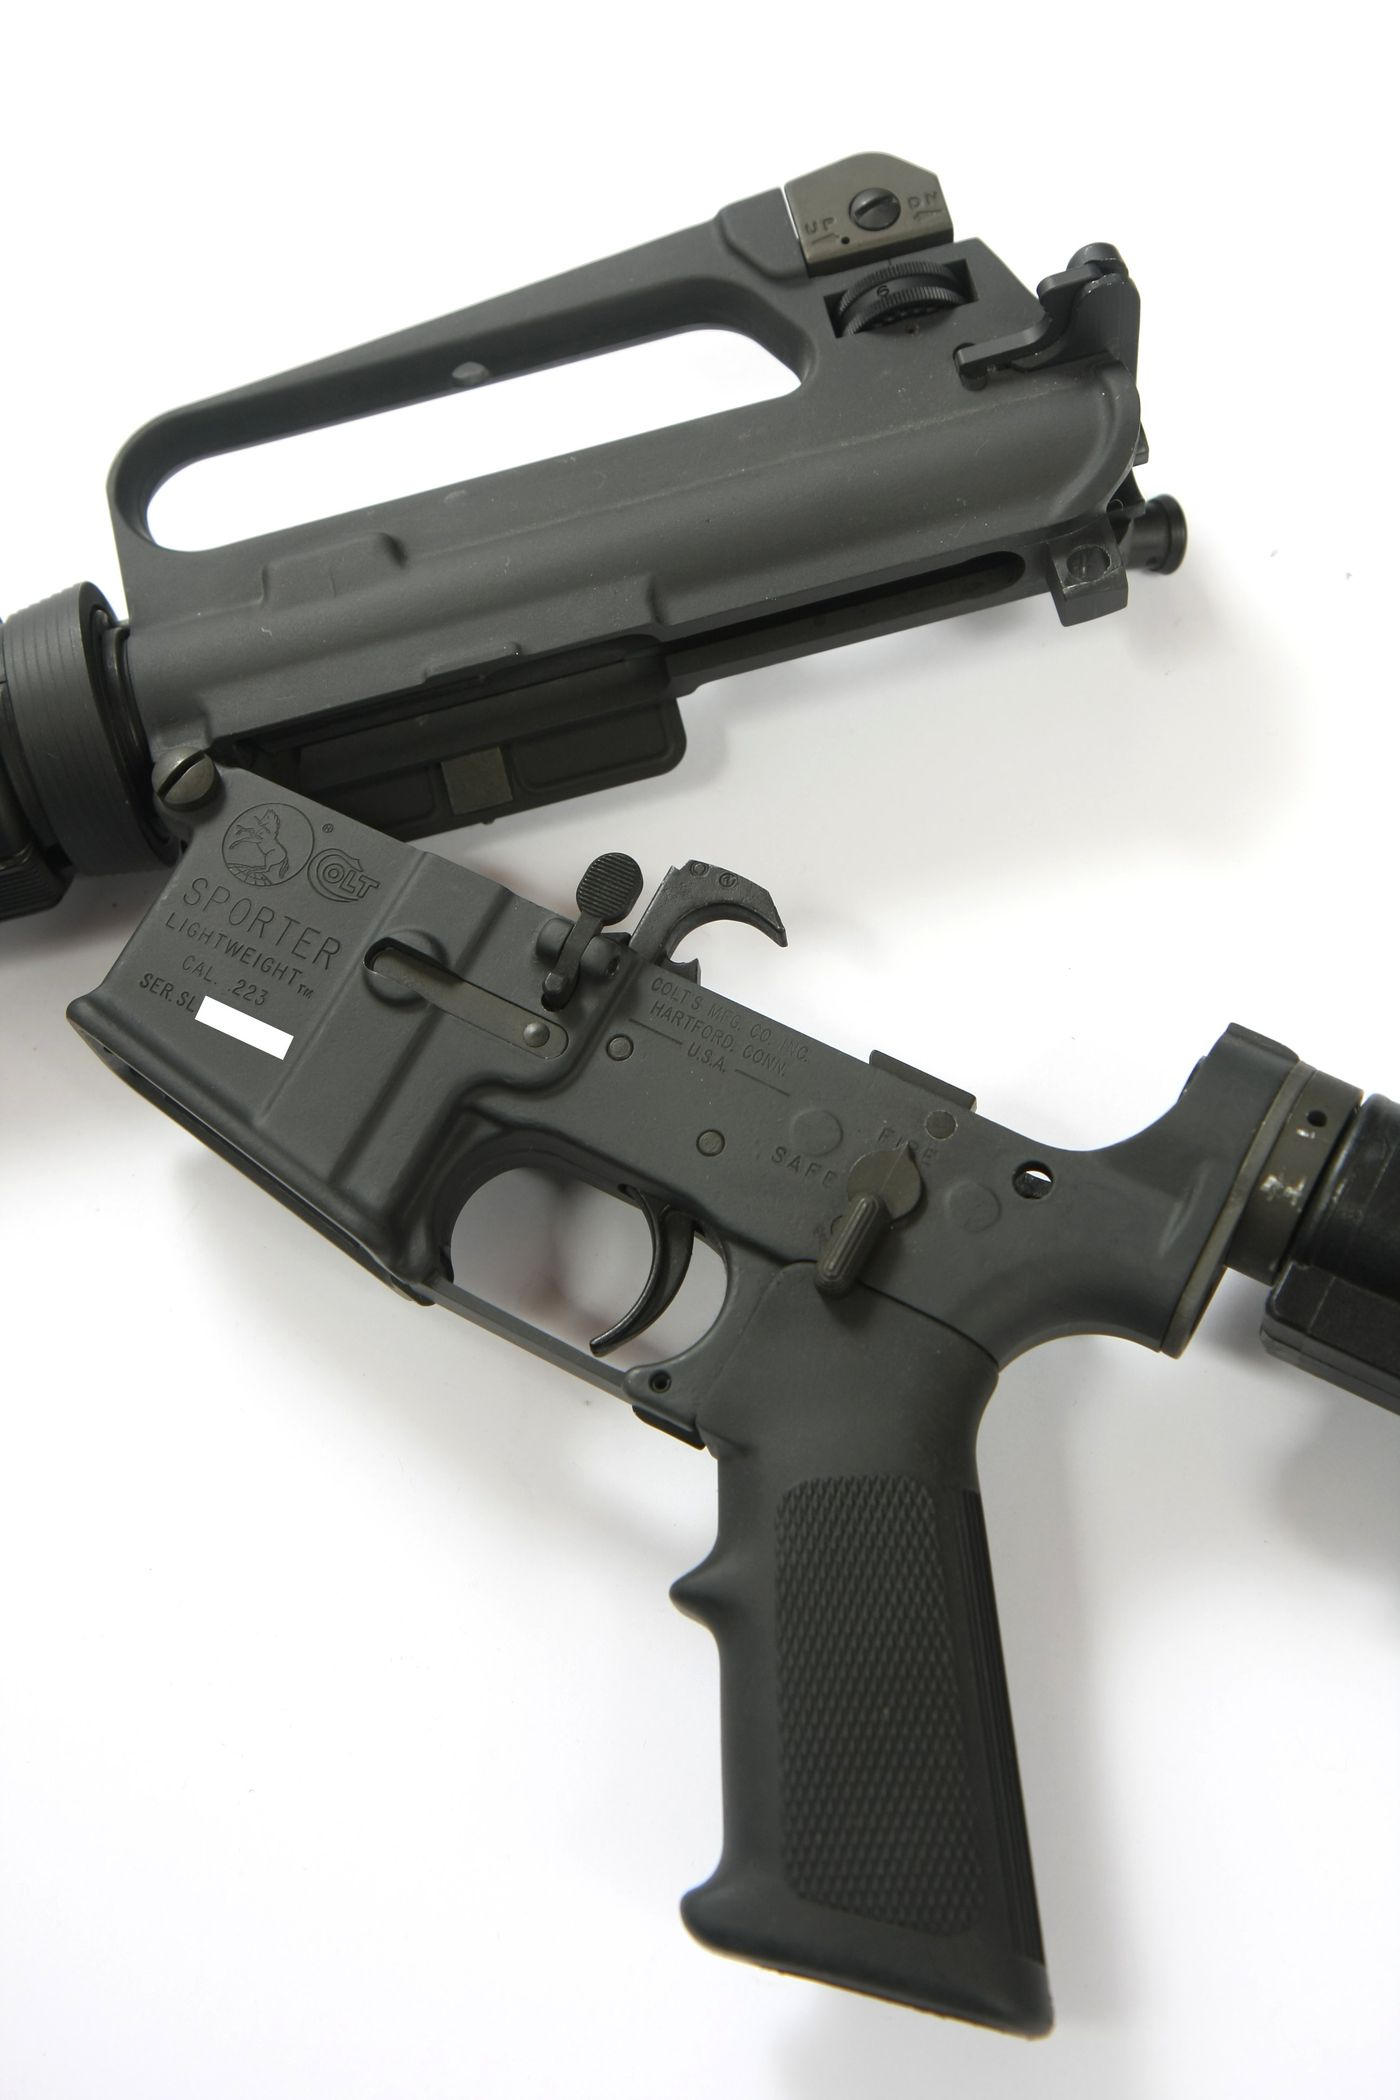 Caliber, cartridges, and bump stocks: guns, explained for